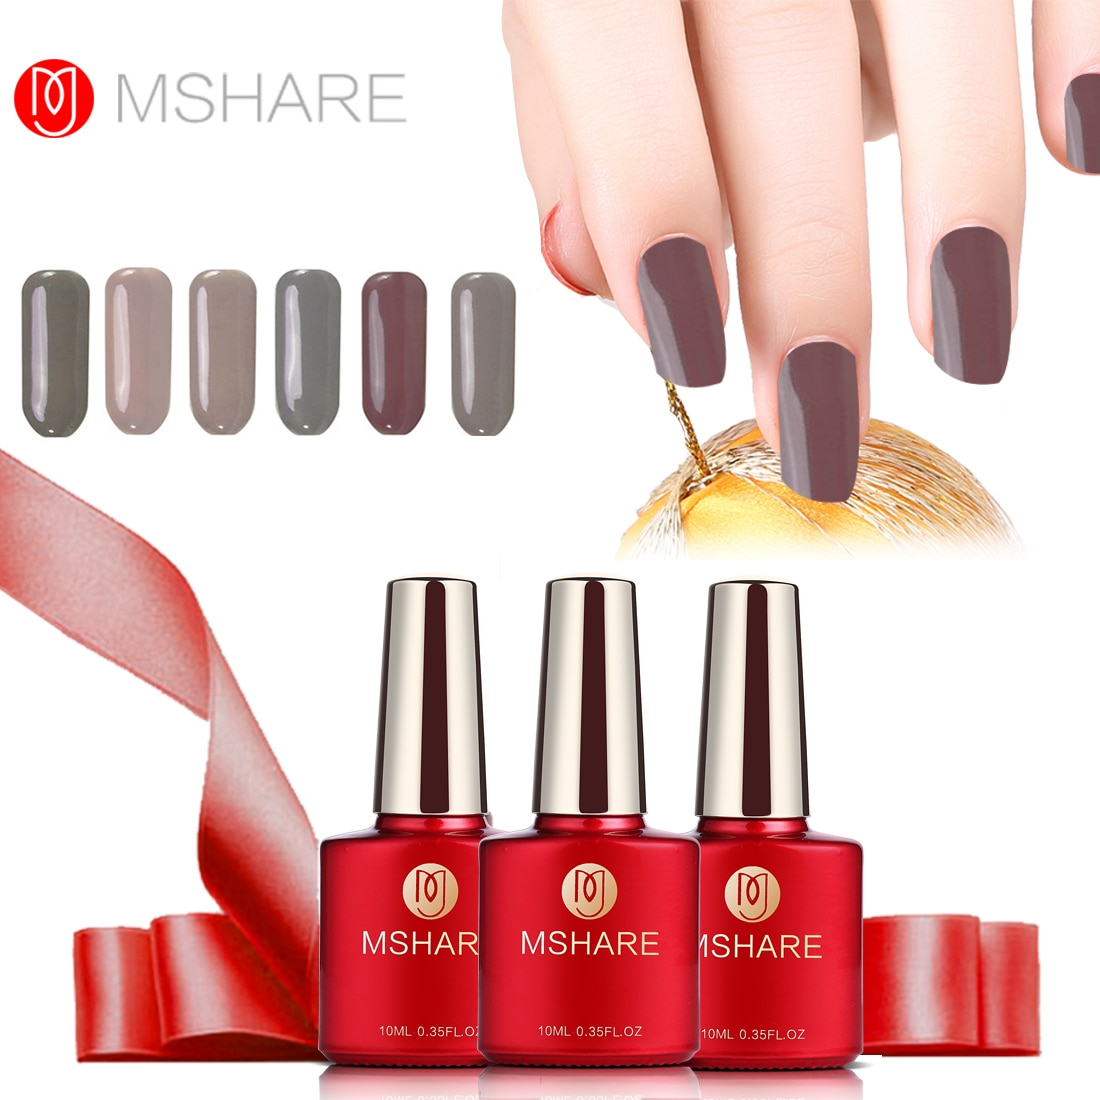 Mshare Nude Zelowy Lakier Do Paznokci Bezowy Zel Uv Do Lampy Led Czarny Gellak Soak Off Gelpolish Brazowy Seria Kawy Kolory Lakier Zelowy Colors Gel Uv Gelnude Gel Aliexpress